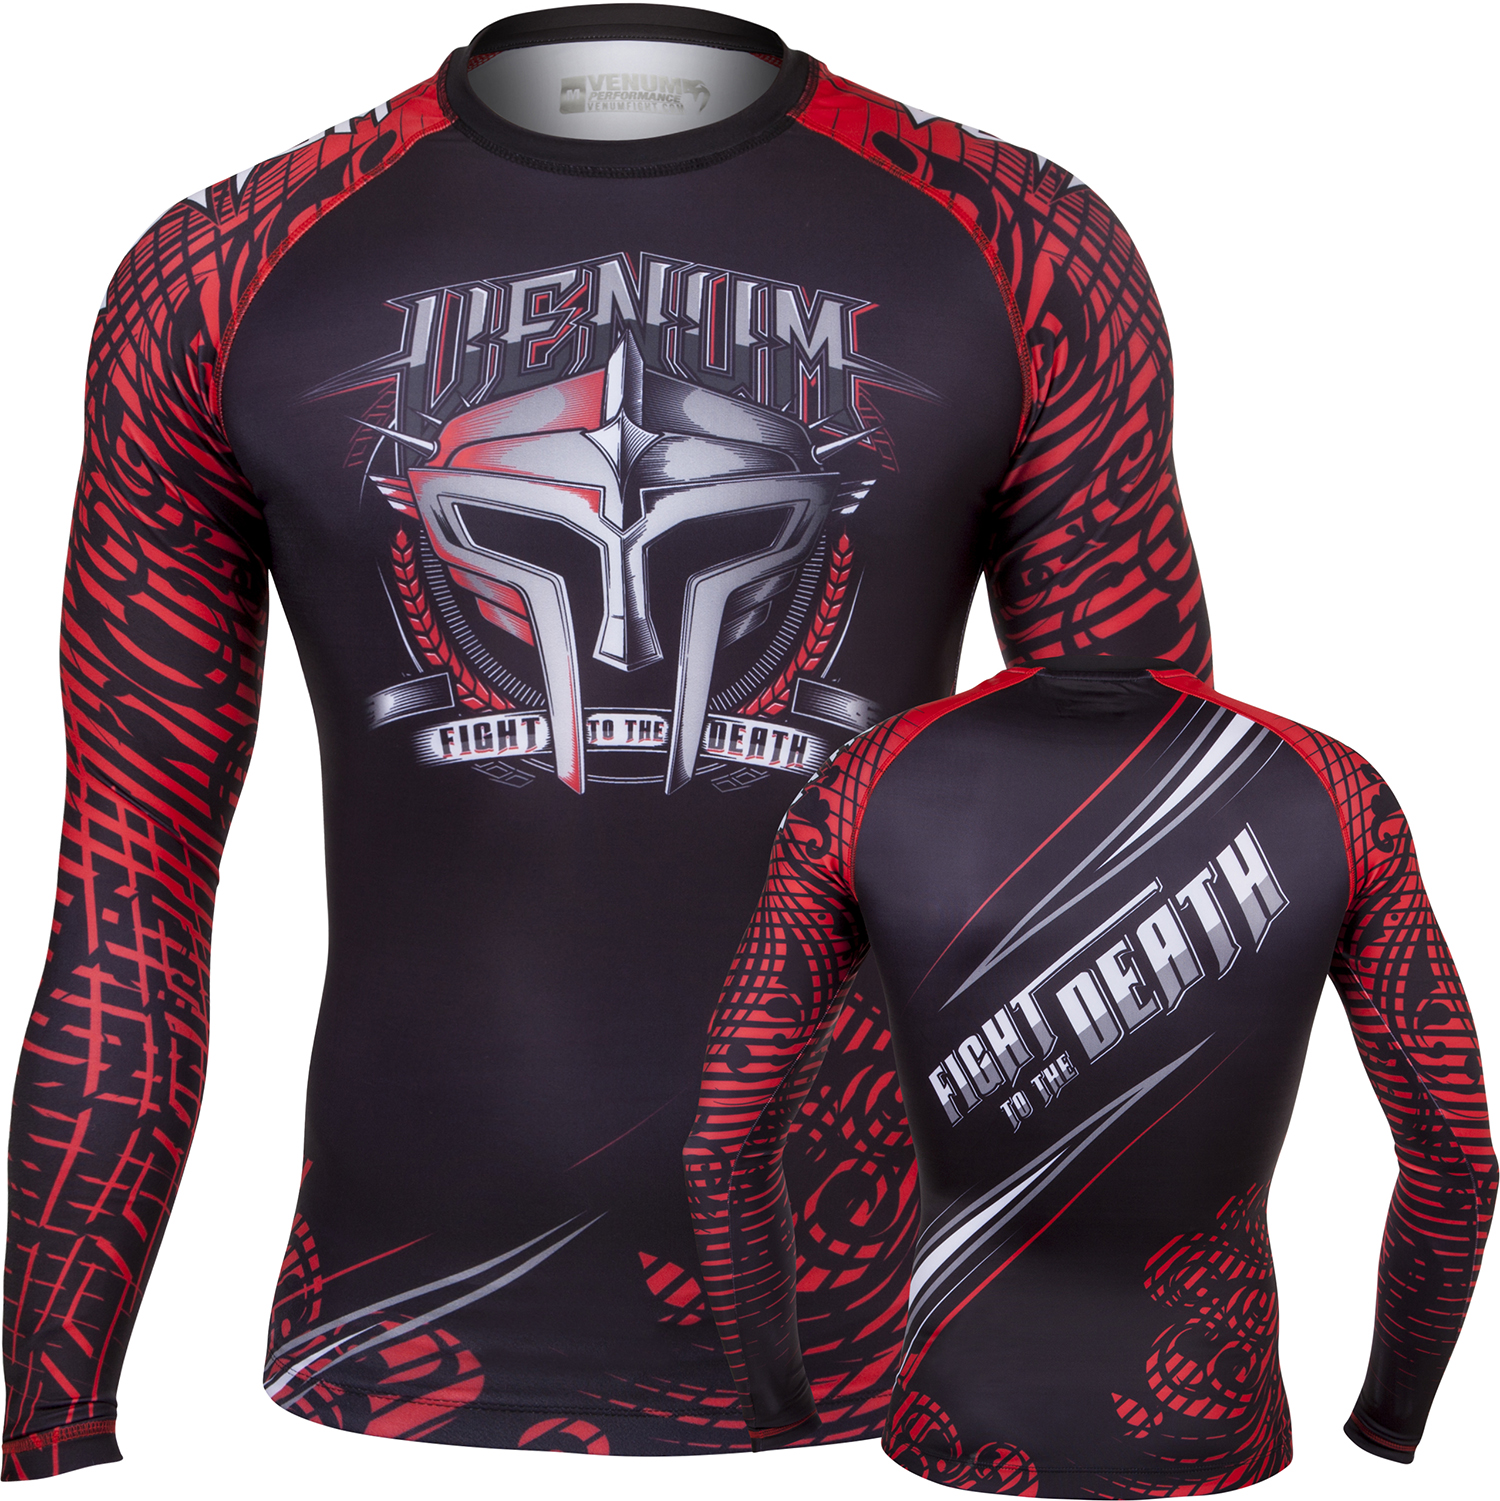 Рашгард Venum Gladiator Black/Red L/S<br>Вес кг: 300.00000000;